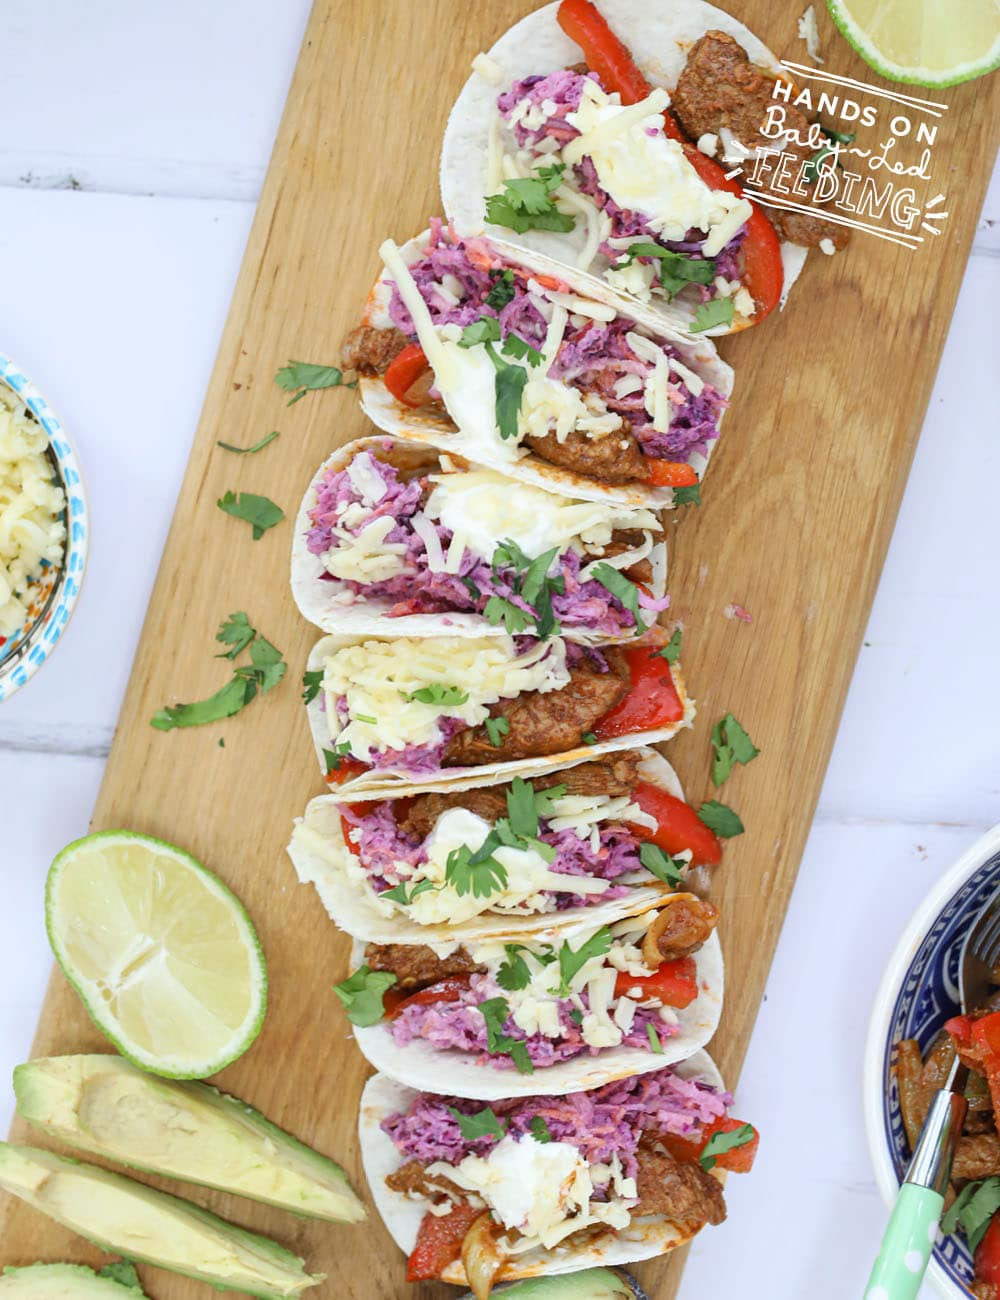 Two-Bite Beef Tacos with Sweet &Tangy Fresh Slaw. These easy little tacos are irresistible! Fully of healthy veggies hidden behind delicious homemade seasoning and a tangy sweet slaw made with apples, Greek yogurt and lemon. This easy healthy dinner is kid friendly, toddler friendly, and safe for baby led weaning. #babyledweaning #babyledfeeding #tacos #pickyeaters #kidfood #healthyrecipe